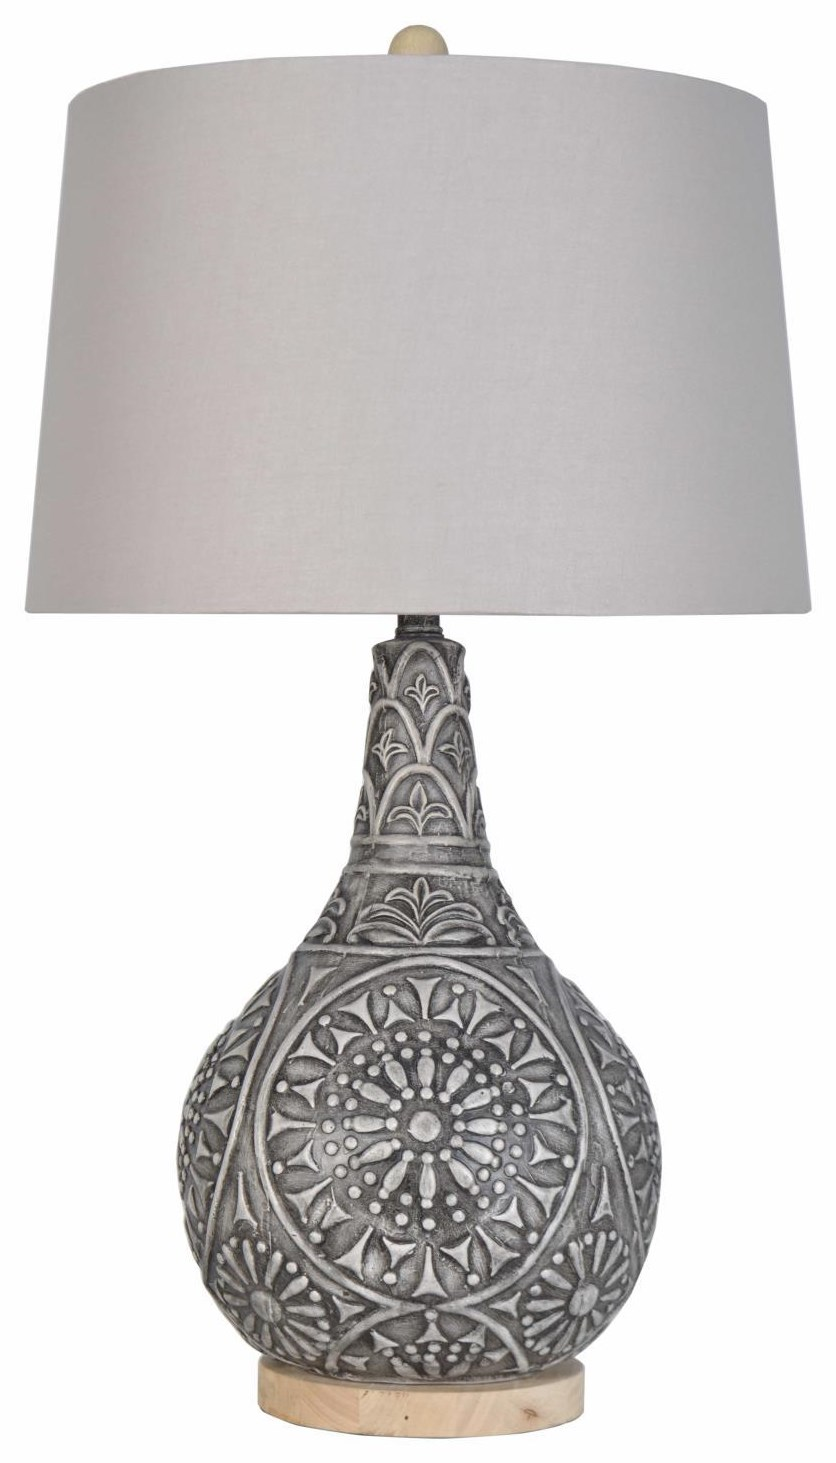 Lamps Per Se 2018 Collection LPS-301 Lamp - Item Number: 301